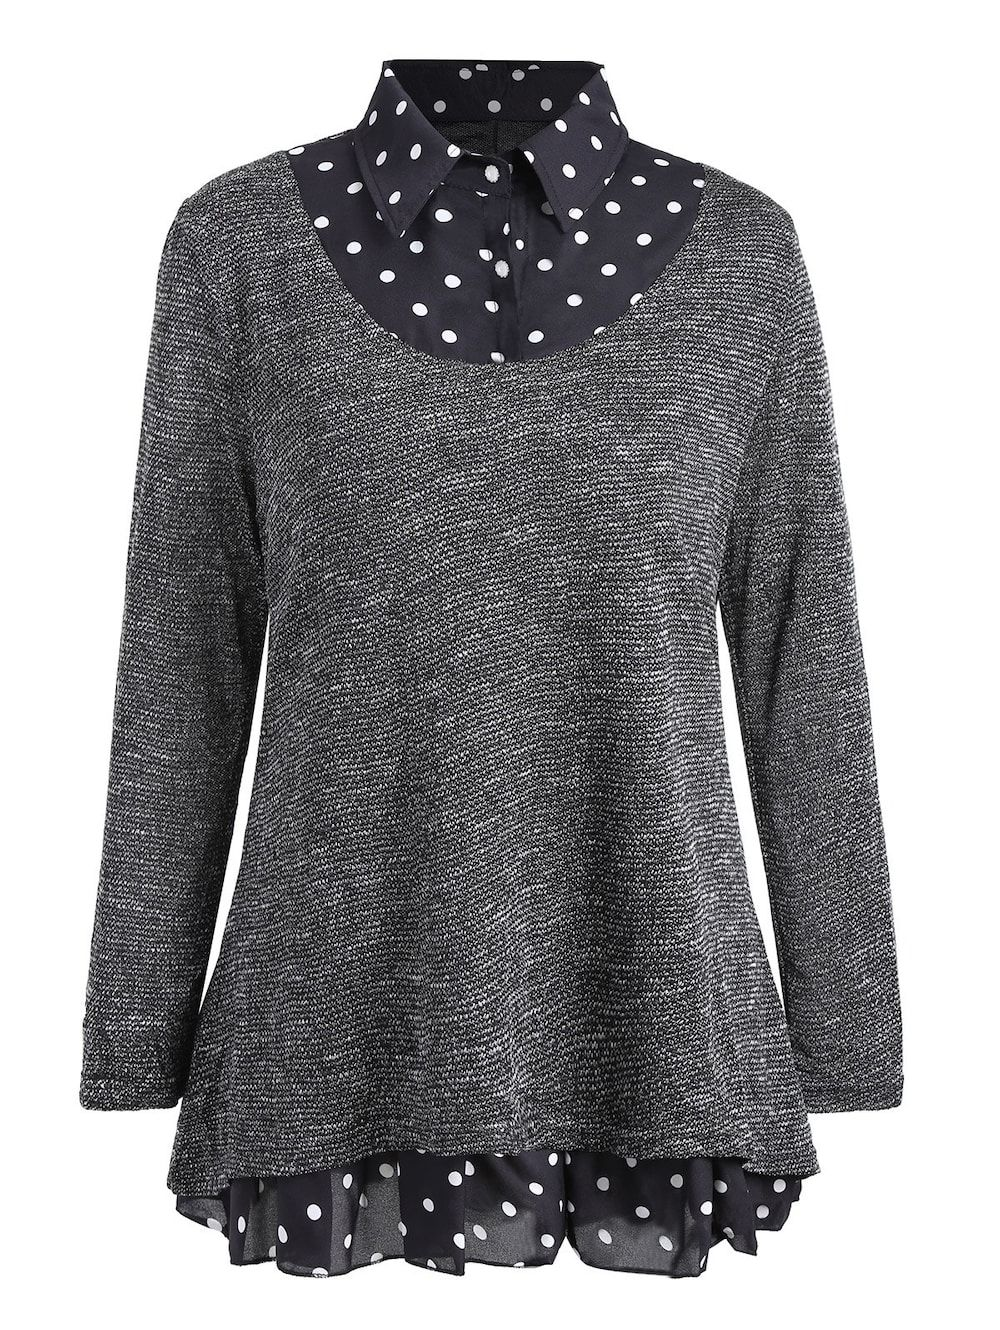 8f0e67bef2 Plus Size Polka Dot Overlay Knit Top - GRAY 5XL | Fatshion | Plus ...